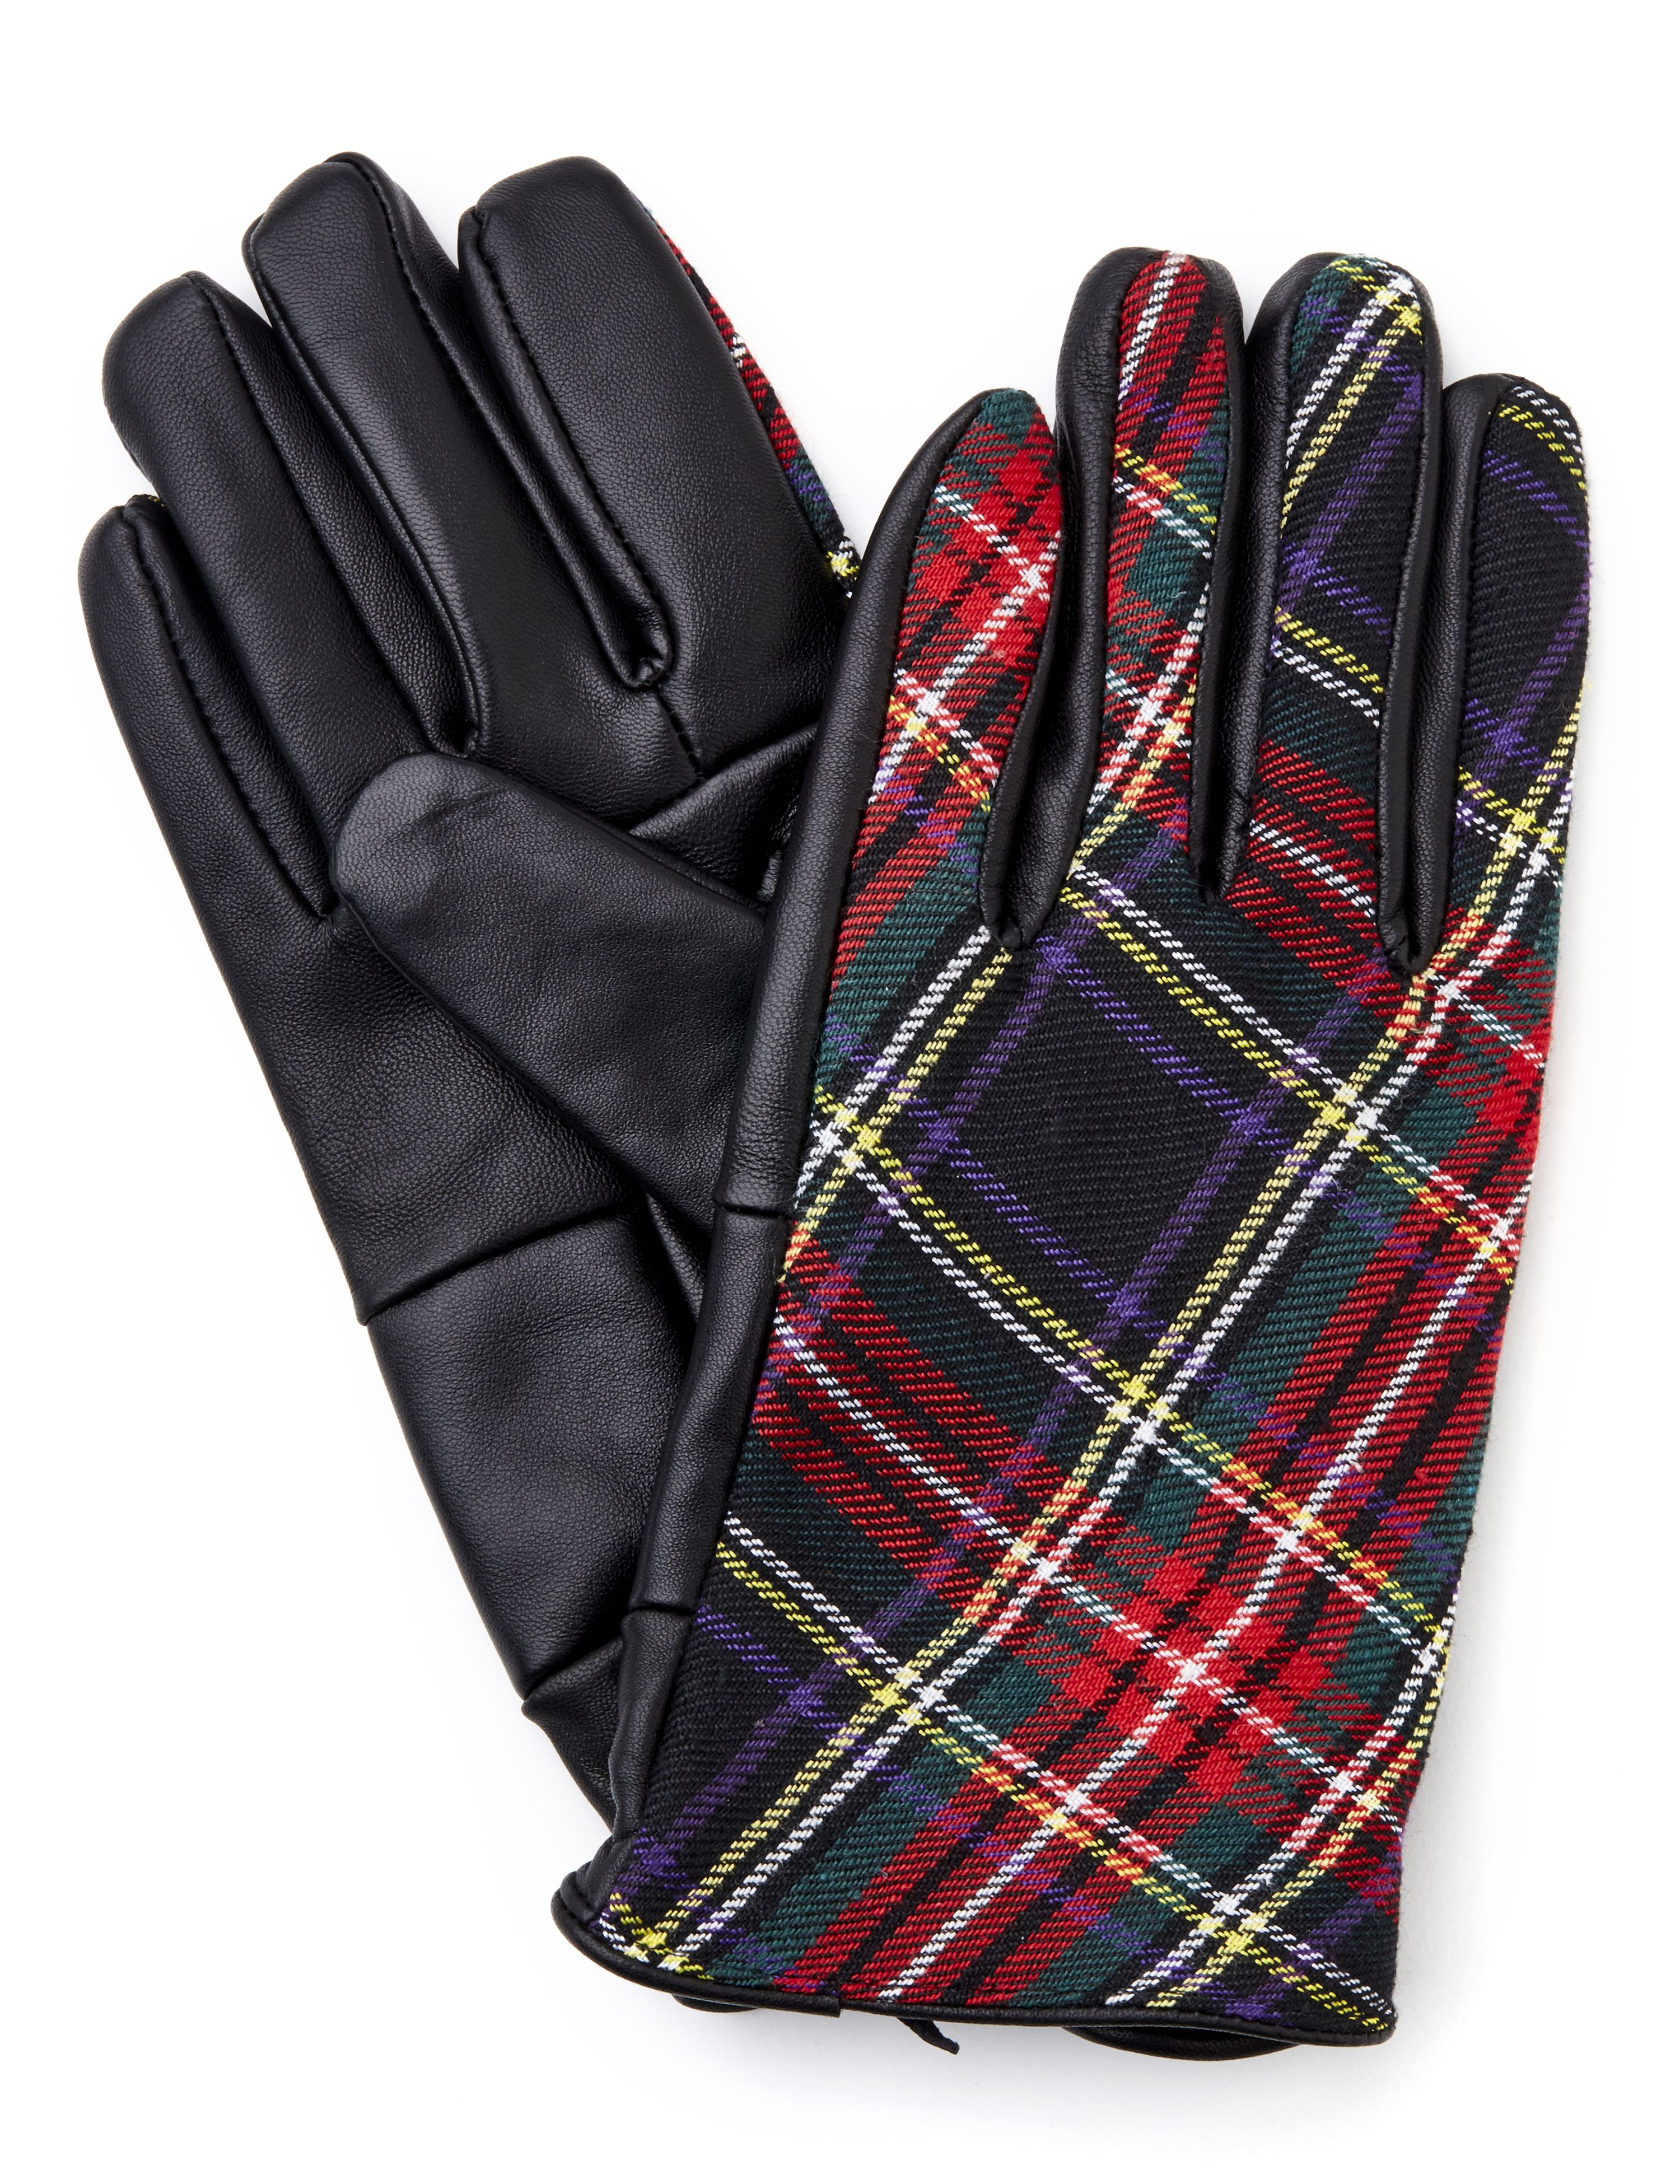 Plaid Glove Plaid/Leather Glove MP-300086447